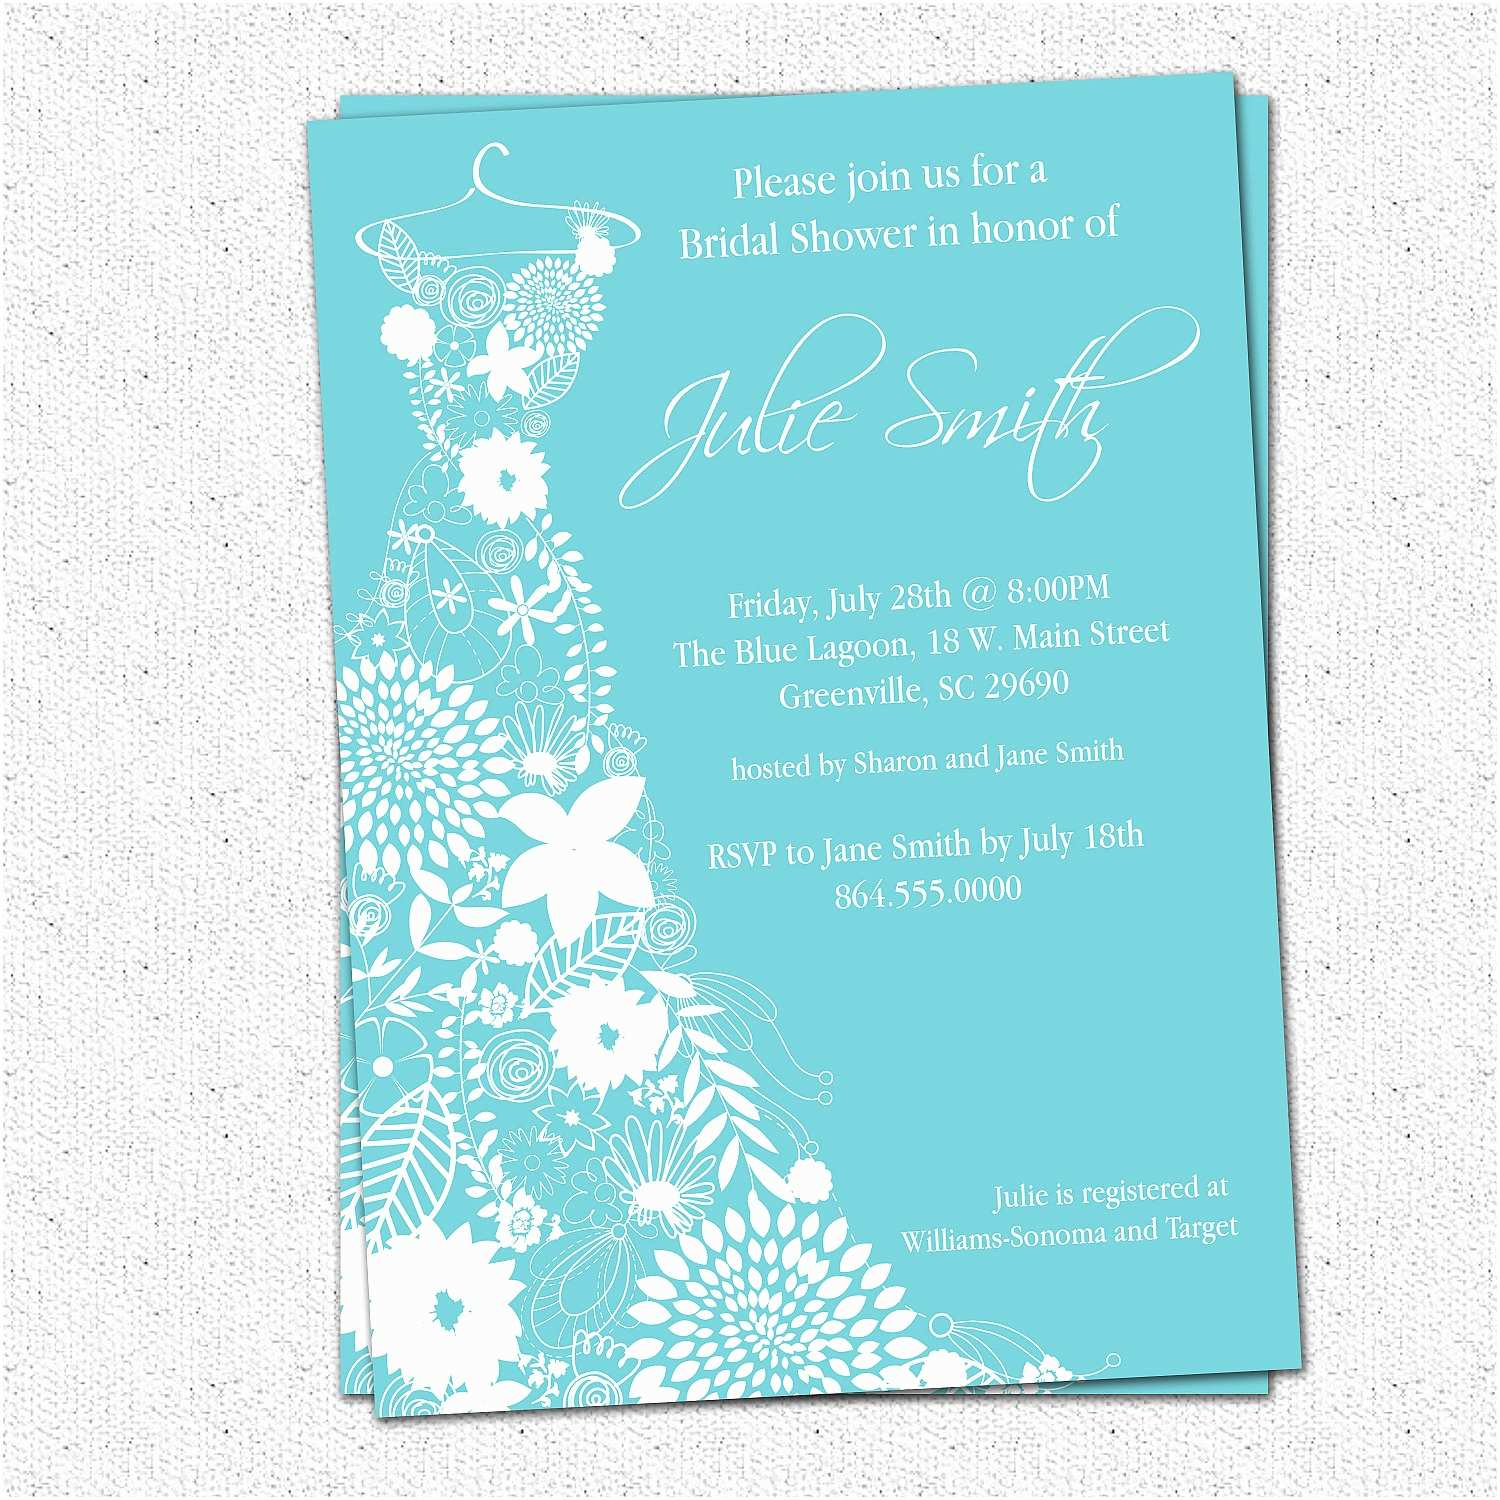 Elegant Wedding Shower Invitations Bridal Shower Invitation Templates Beepmunk